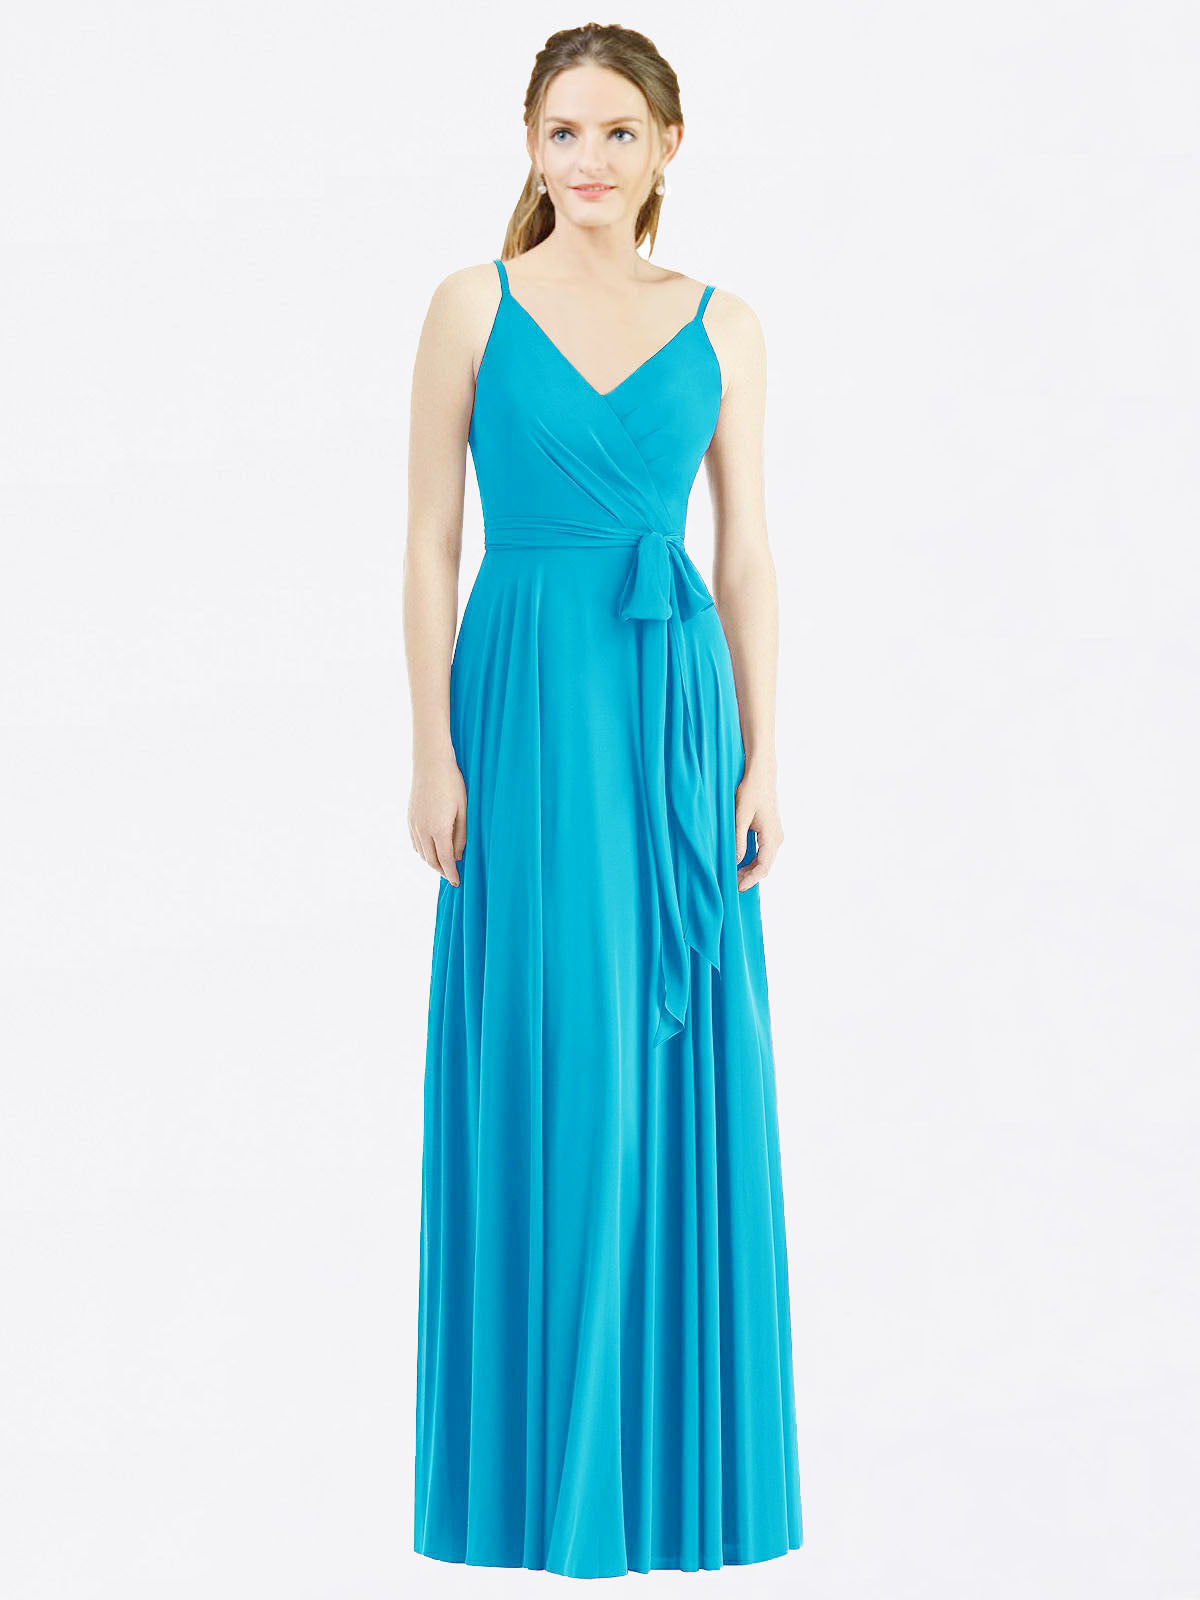 Long A-Line Spaghetti Straps, V-Neck Sleeveless Turquoise Chiffon Bridesmaid Dress Madilyn